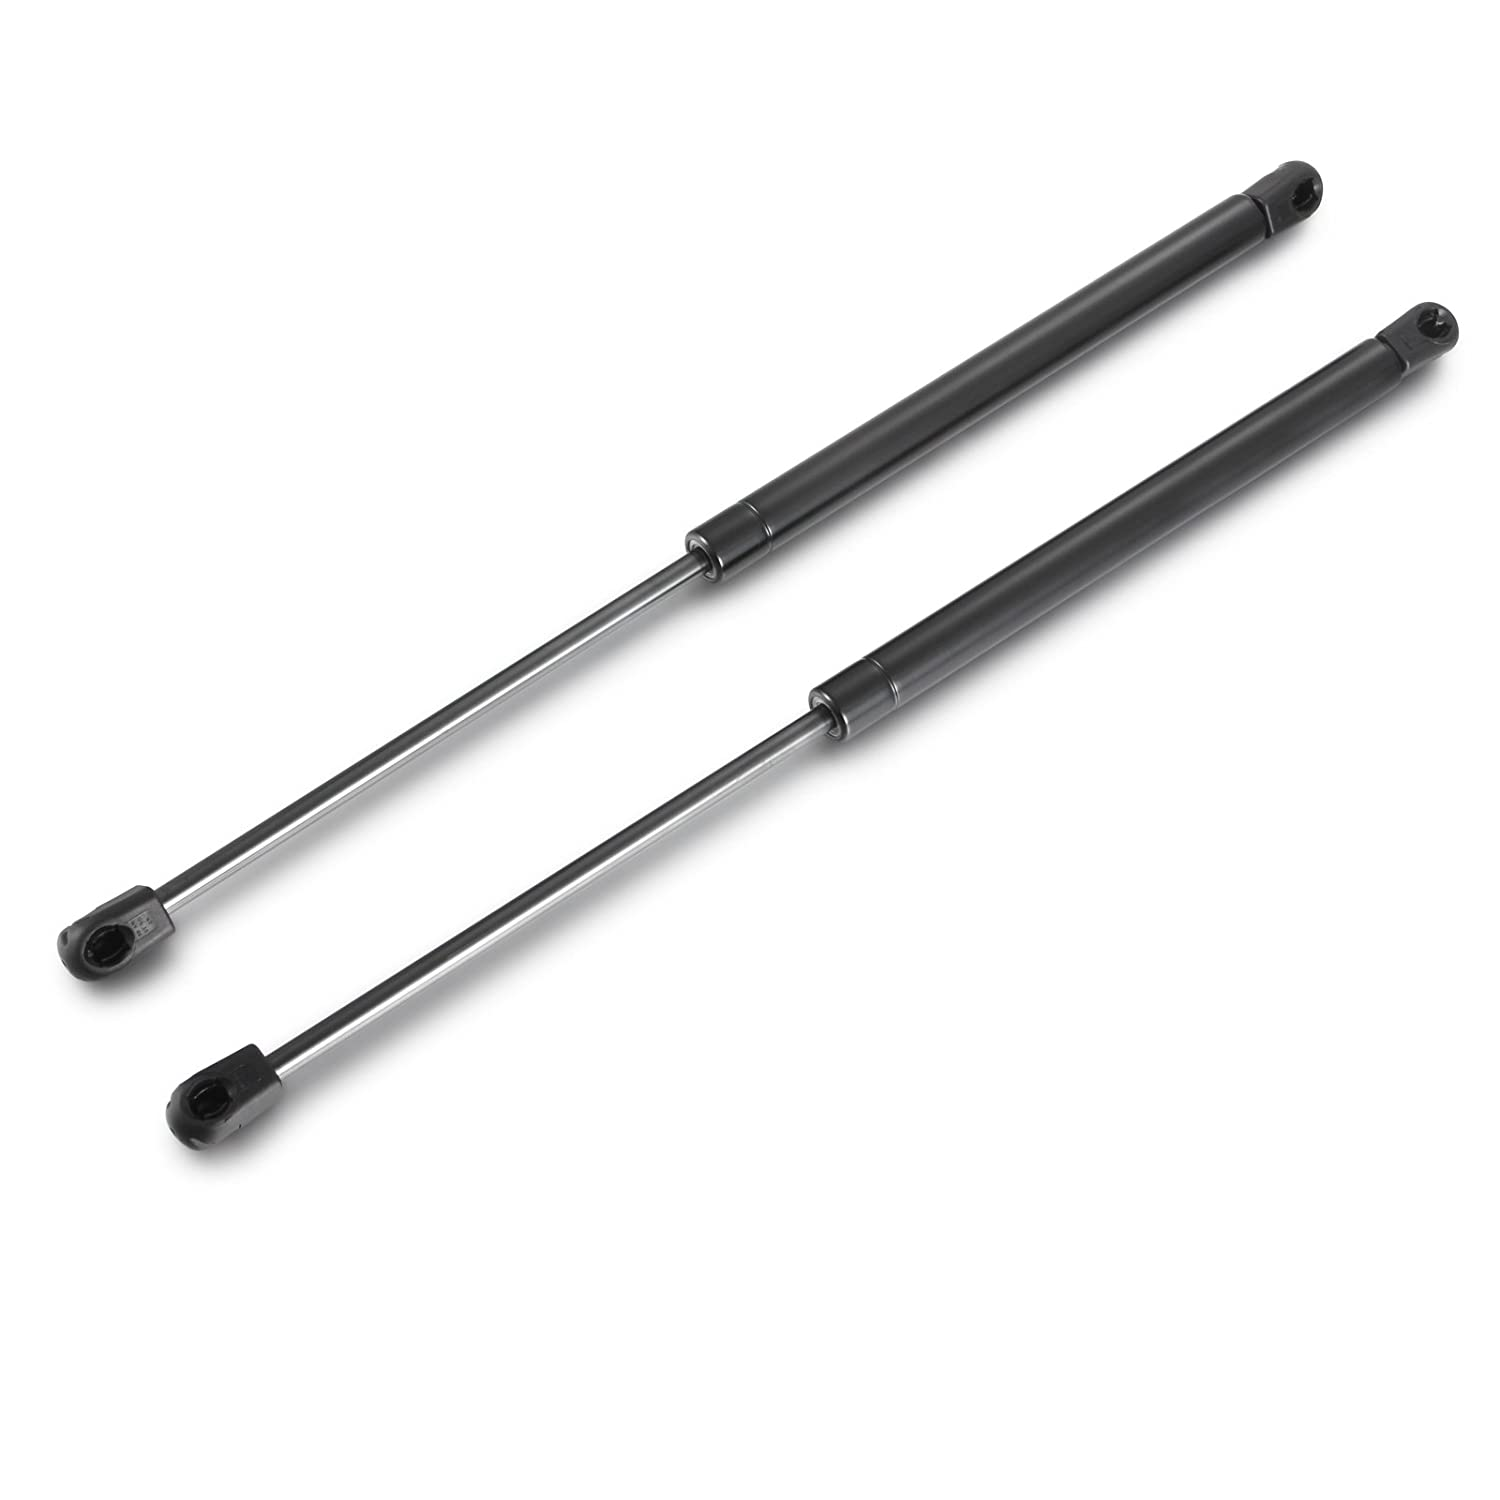 Pair of Gas Struts Lift Support 8731F2 Fits CC 1.6 2.0 2000-ON From Madlife Garage